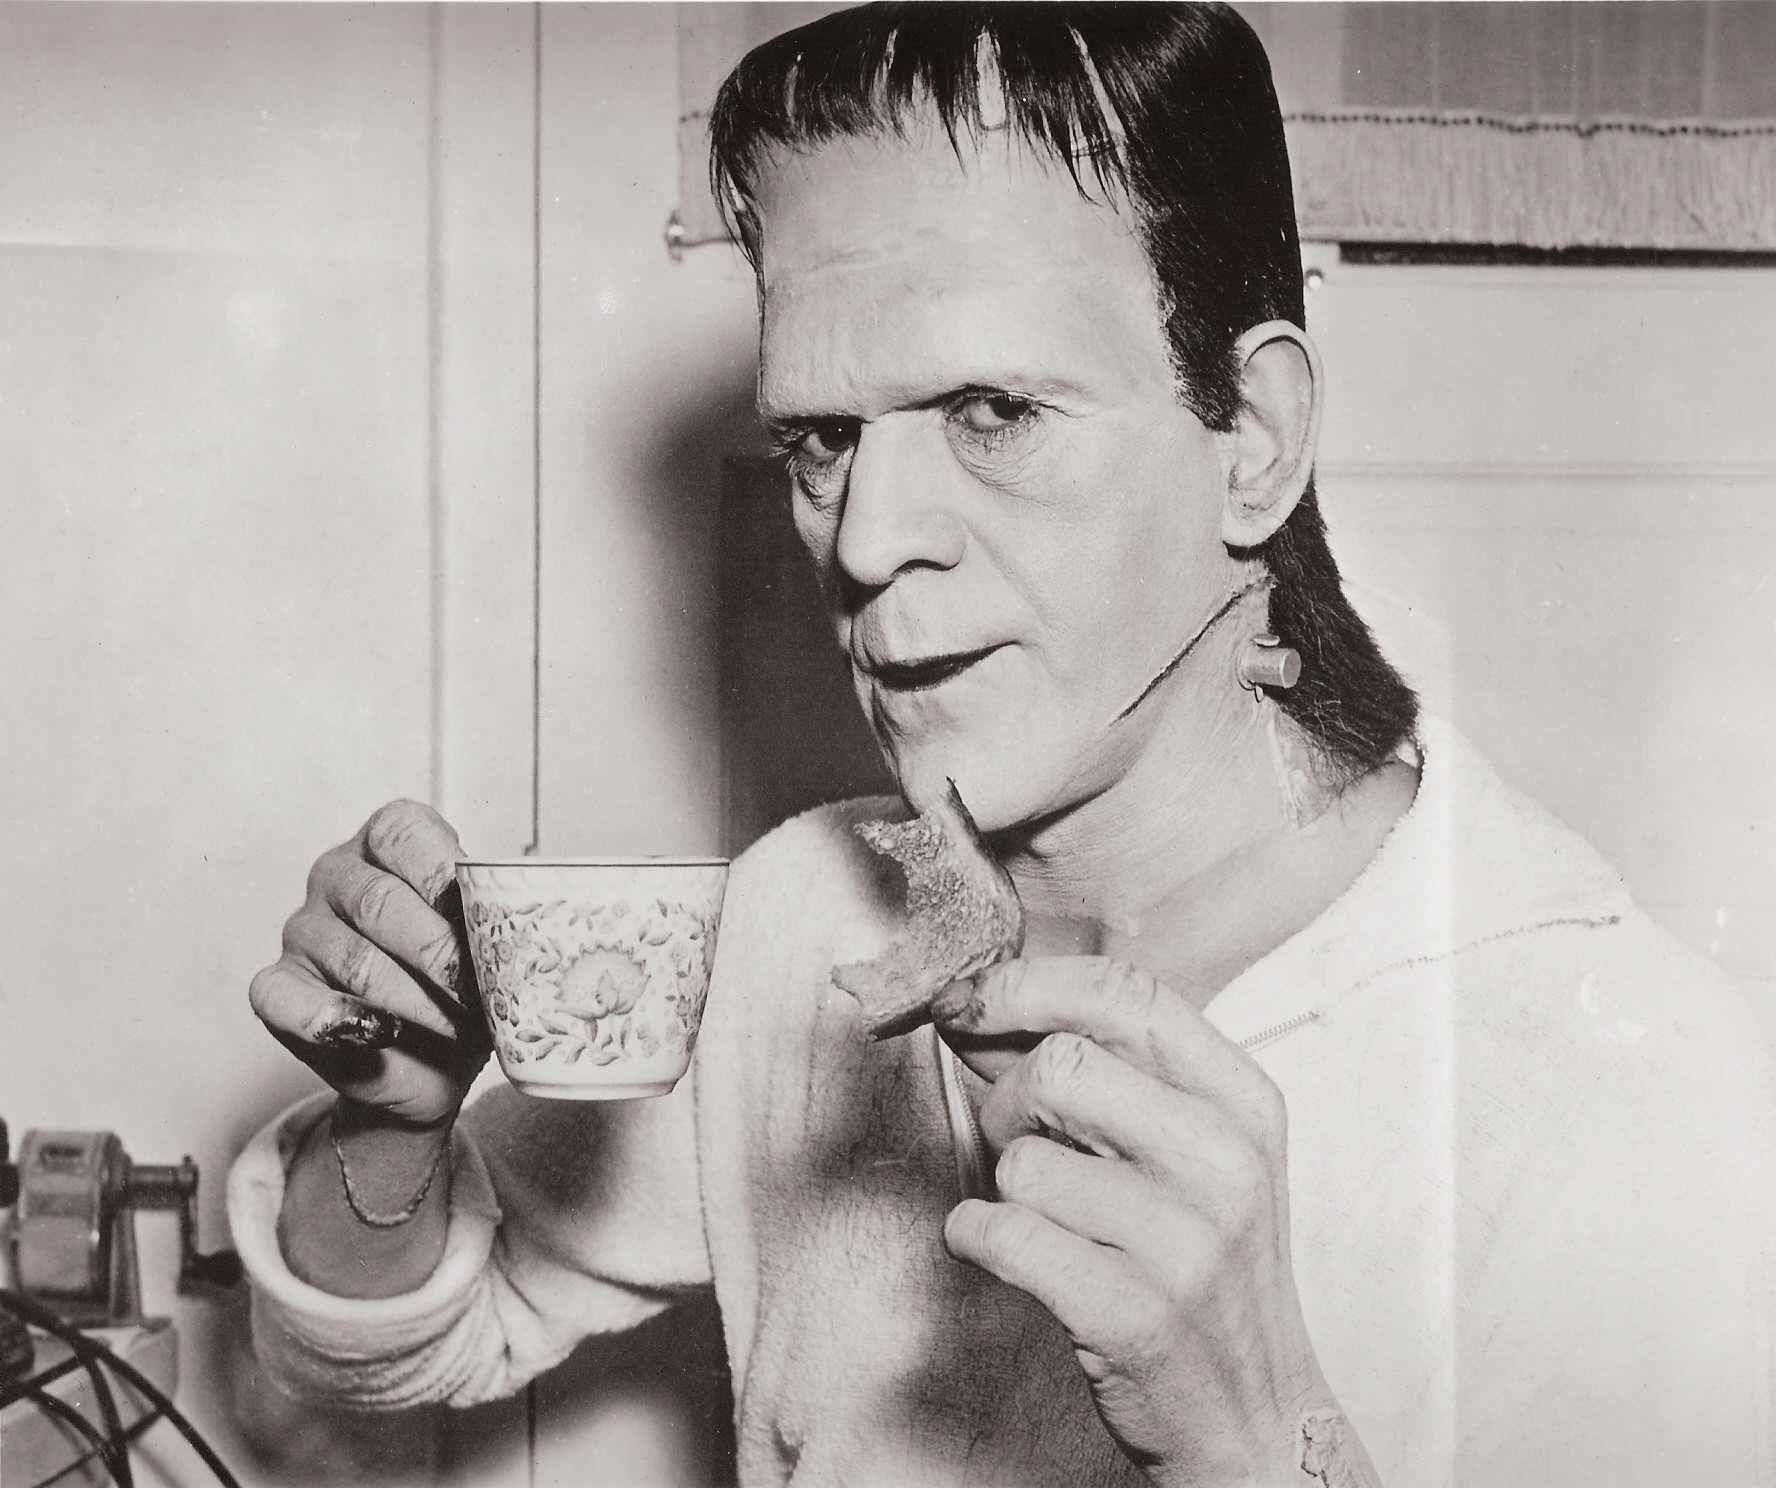 Boris Karloff cinema frankenstein hollywood film pellicola cult cultstories 1931cult stories cultstories cinema cult story cultstory art culture music ipse dixit aneddoti citazioni frasi famose aforismi immagini foto personaggi cultura musica storie facts fatti celebrità vip cult spettacoli live performance concerto photo photography celebrity giornalismo scrittura libri genio pop icon attore cantante solista pittrice scultore attrice star diva sex symbol